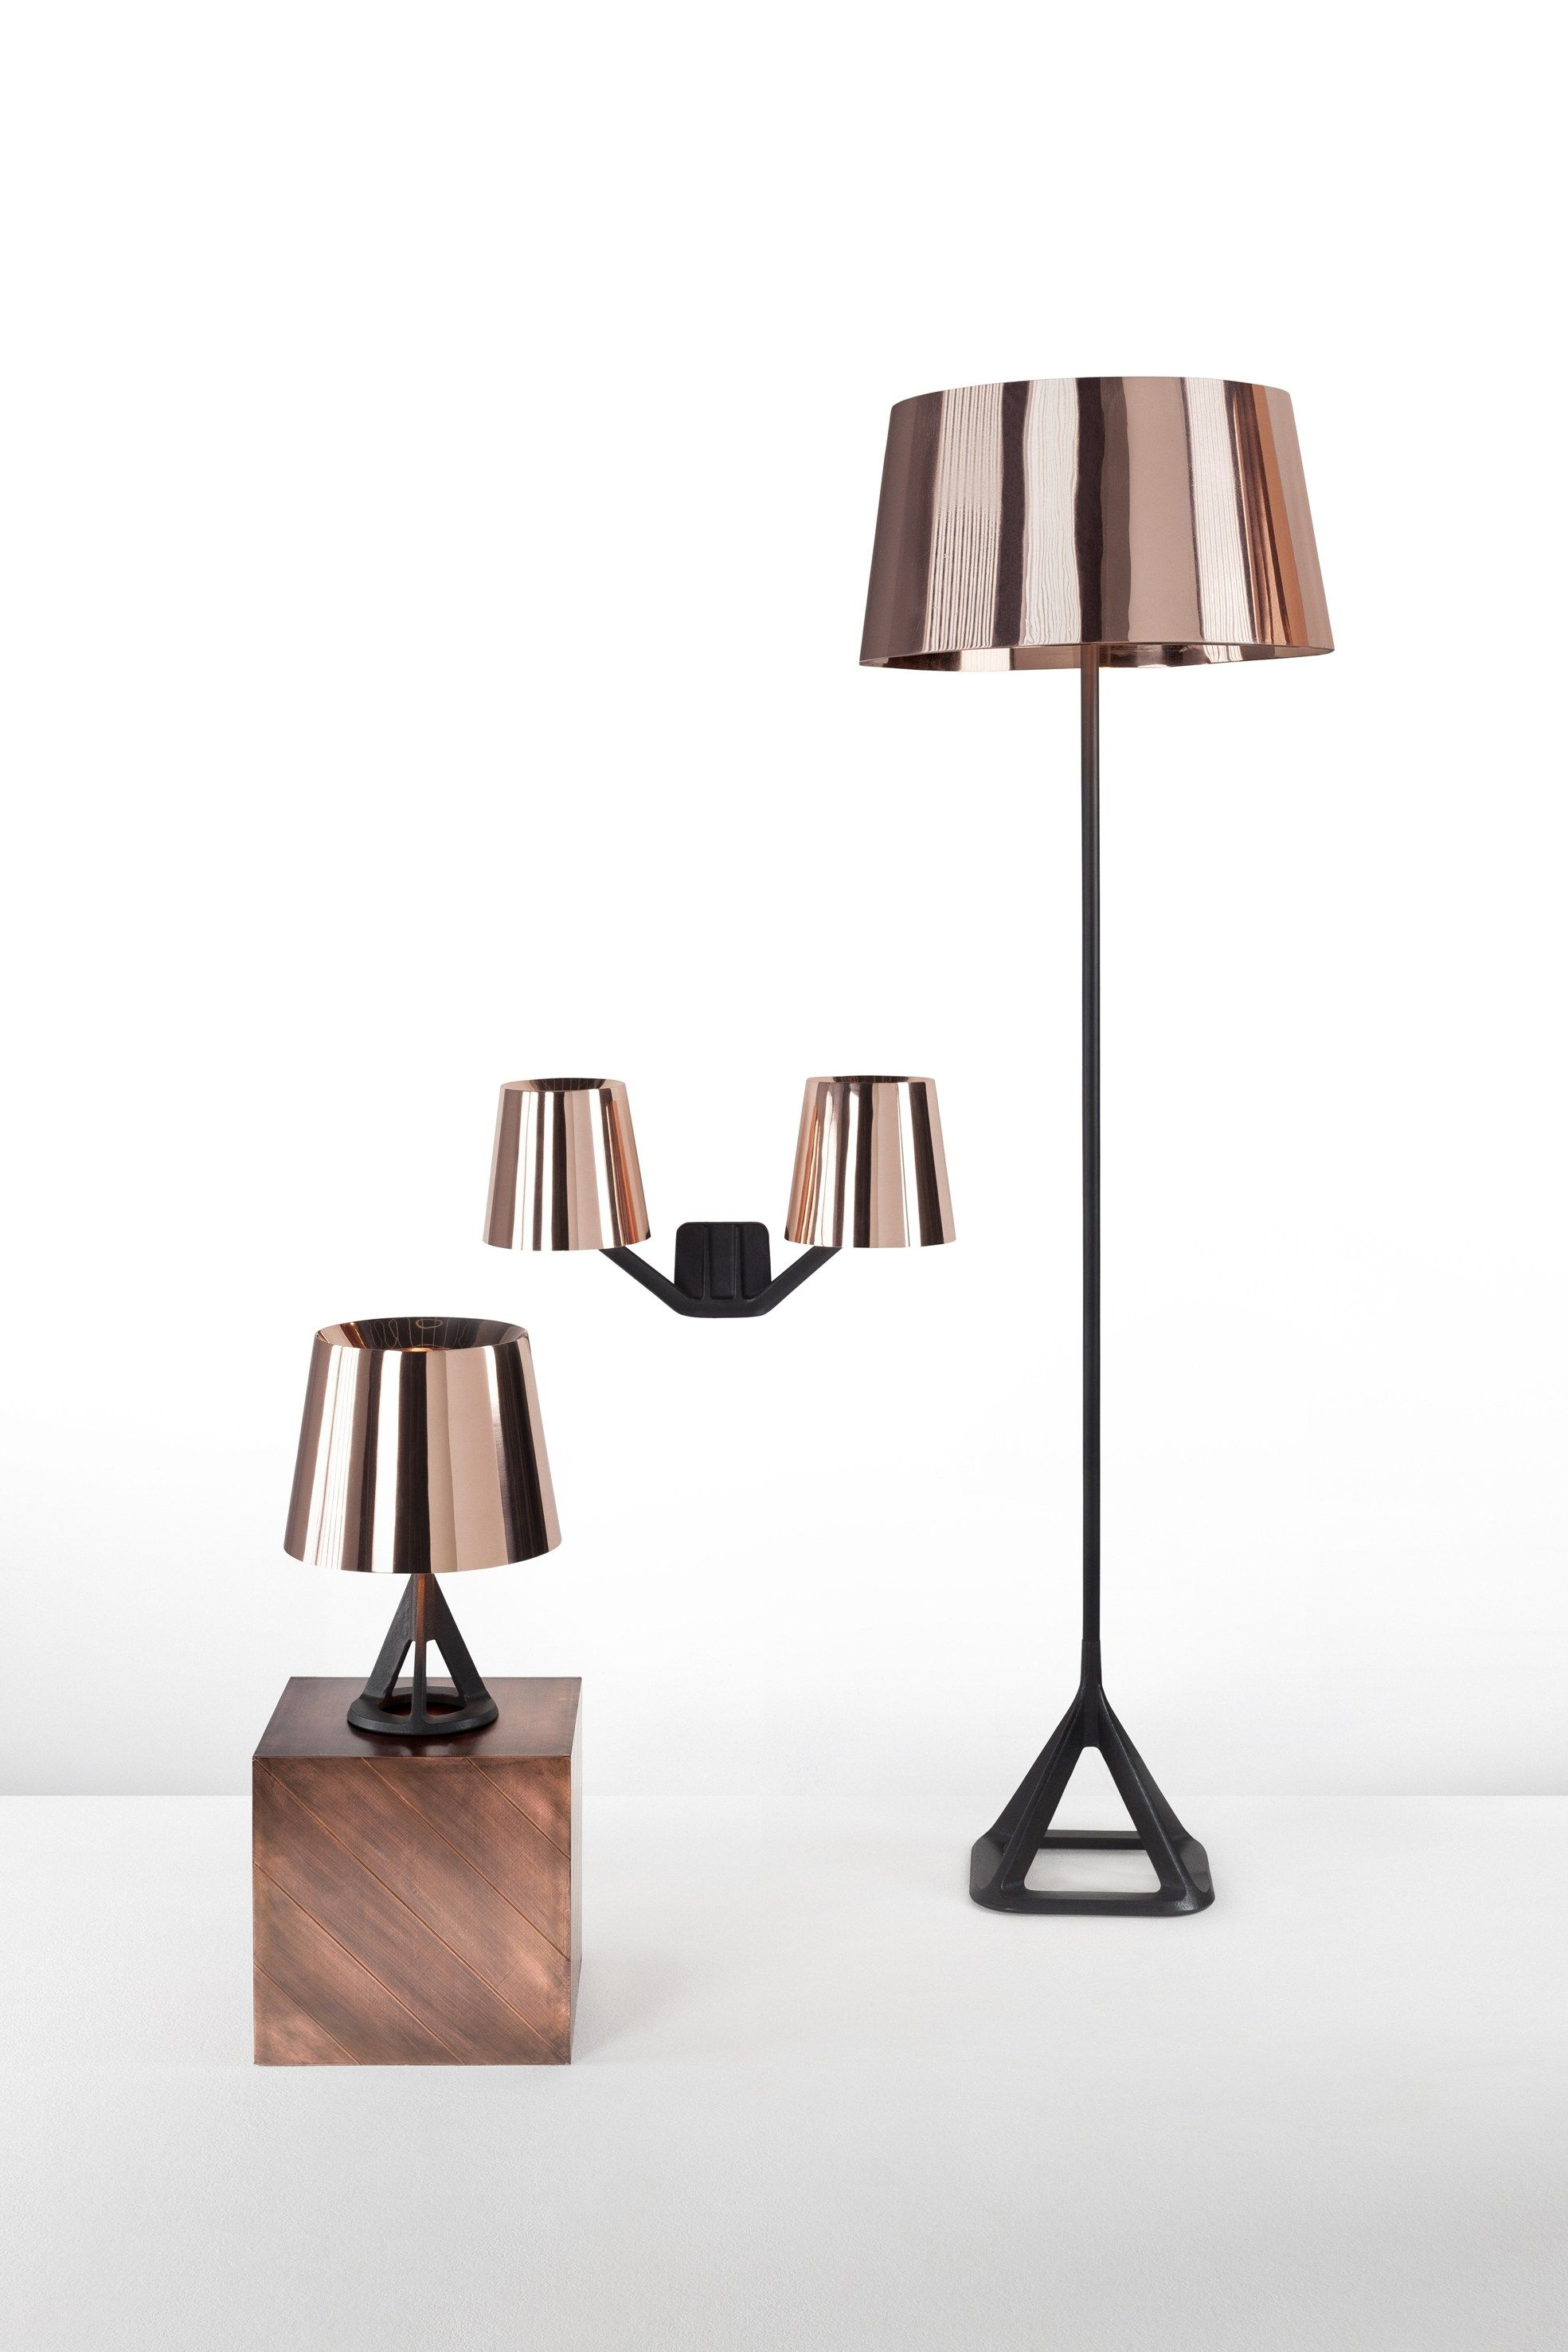 Copper Wall Light Base Copper Wall Light By Tom Dixon Design Tom Dixon Copper Floor Lamp Copper Wall Light Copper Table Lamp